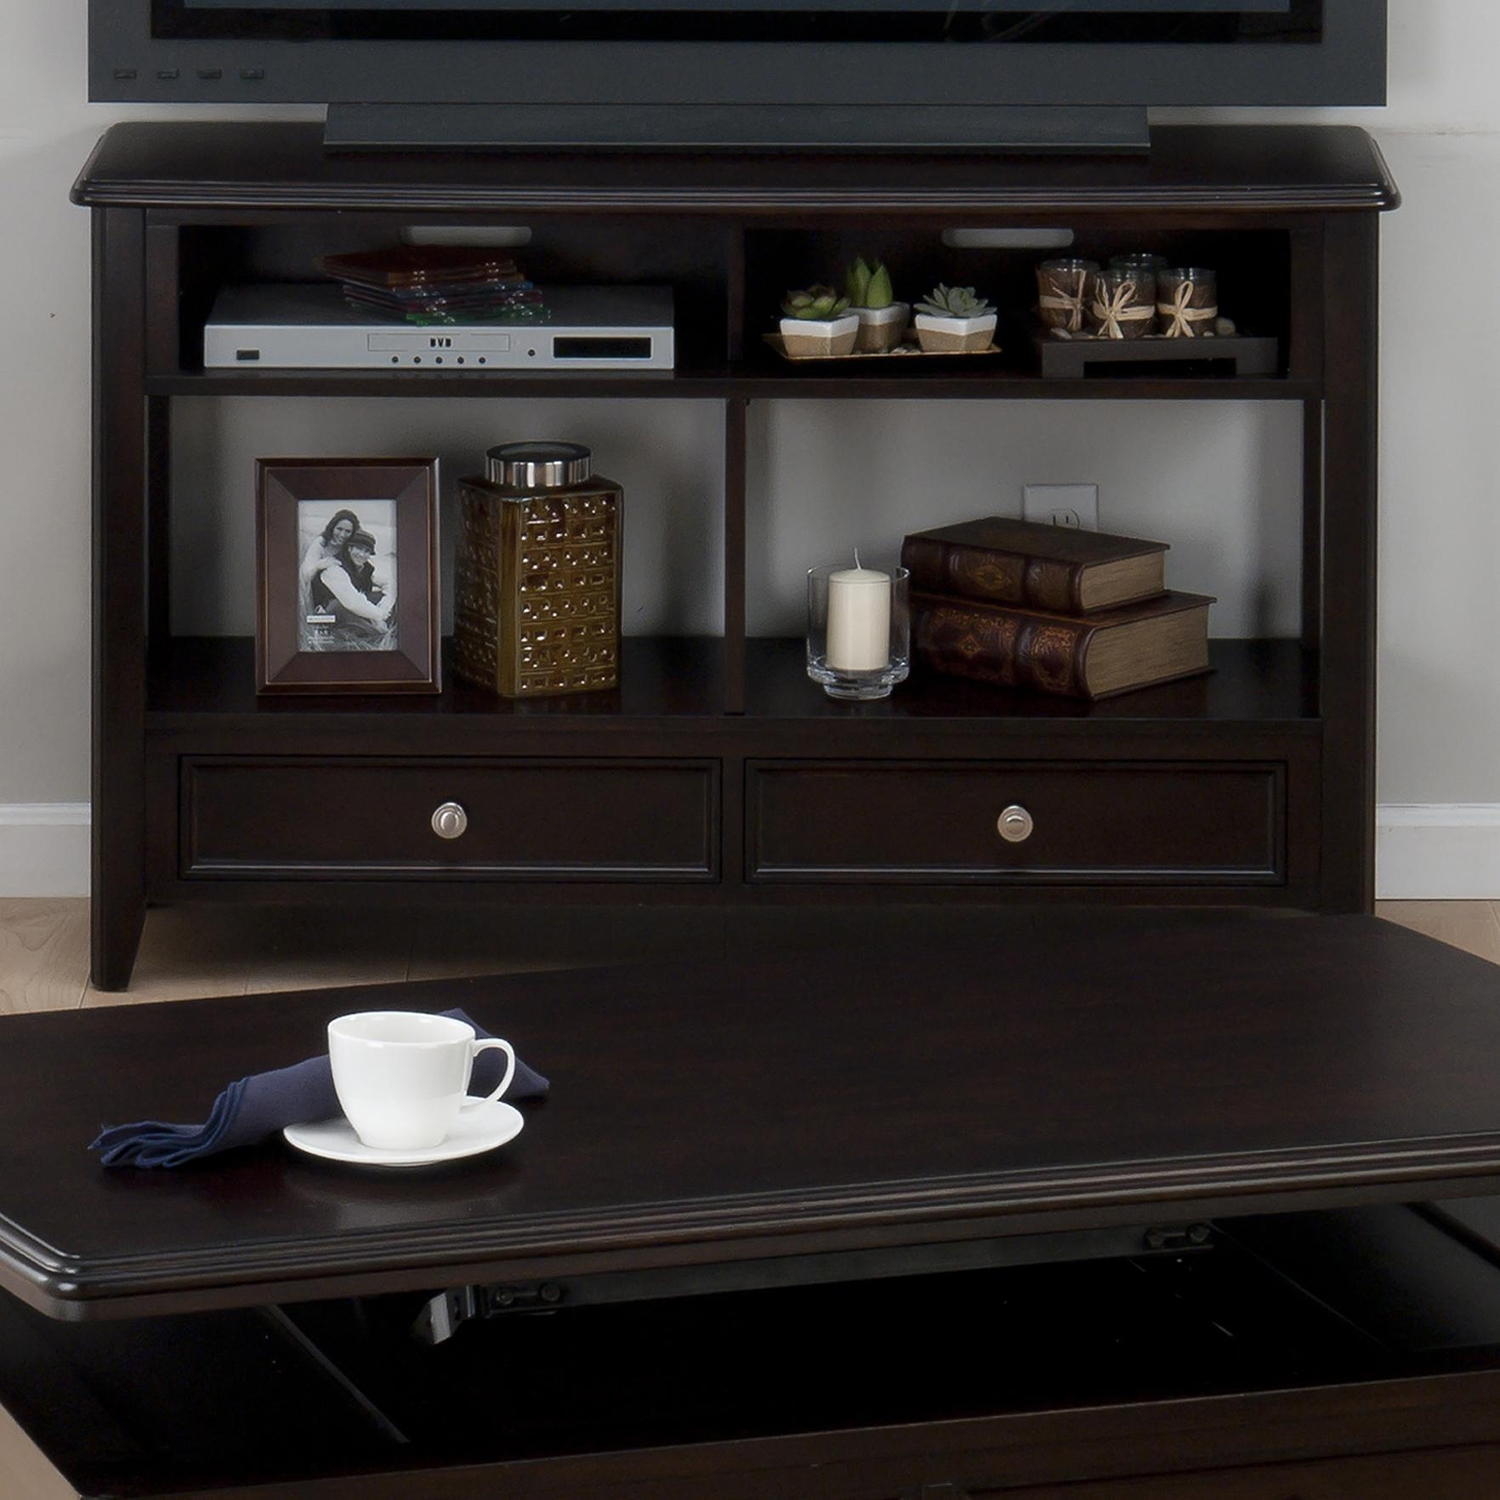 Coronado Sofa/Media Table - 2 Drawers, Espresso - JOFR-319-4